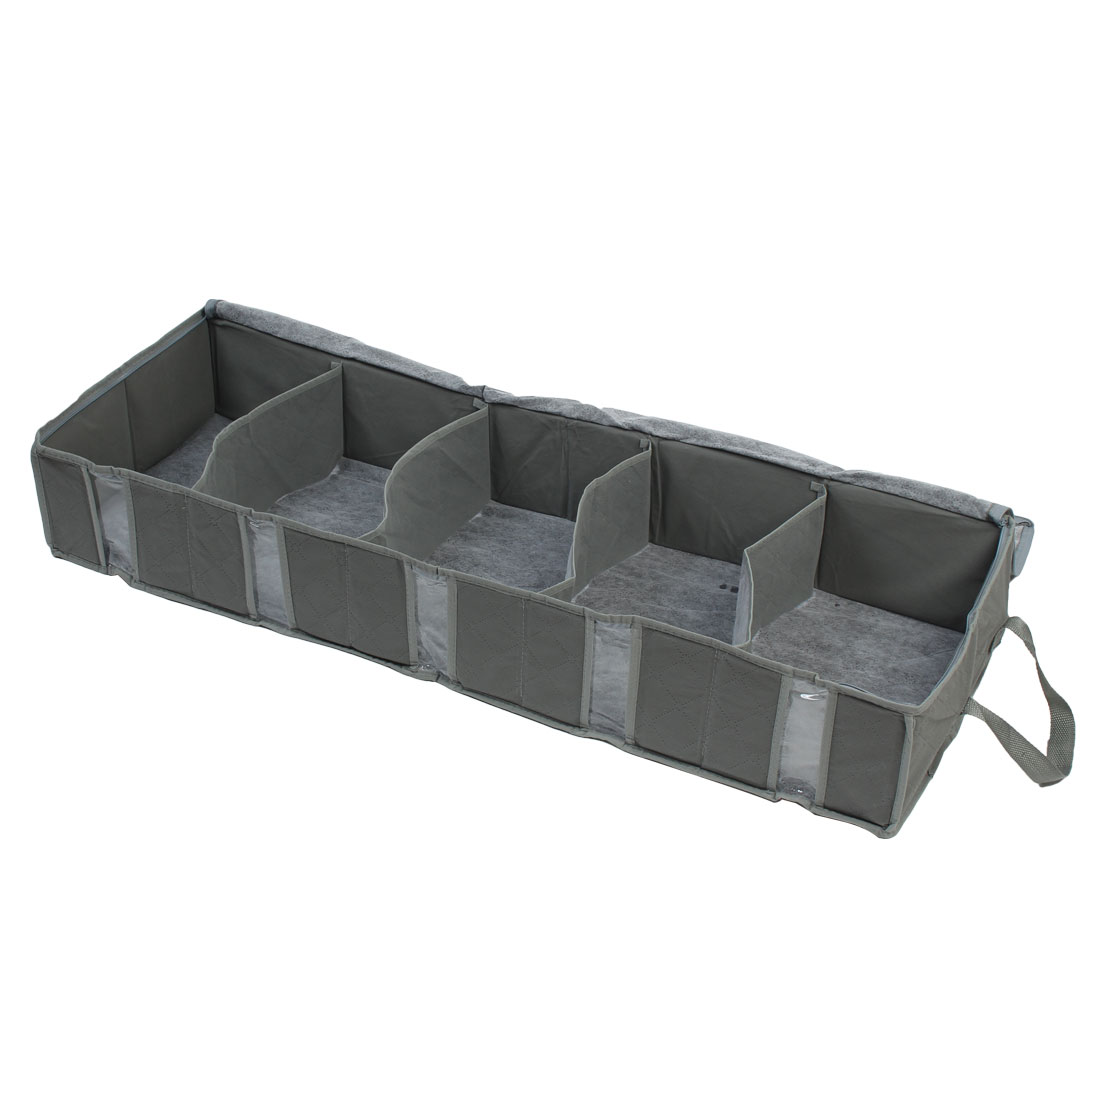 Folding Style 5 Compartment Clothing Sundry Organizer Case Storage Bag Holder Container